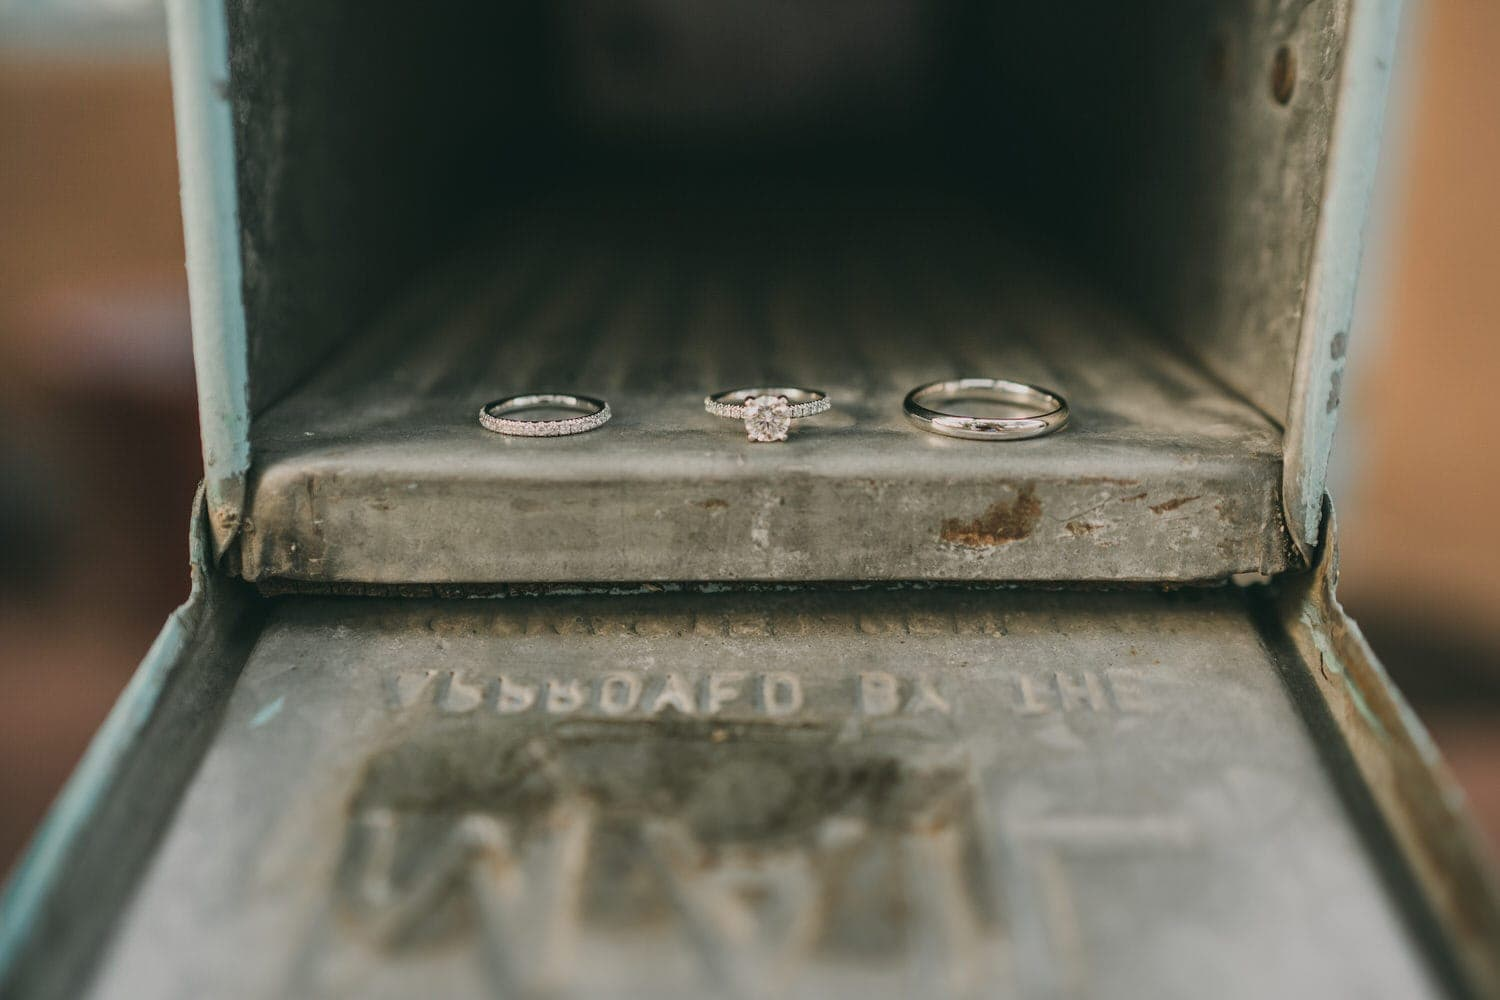 Close up of wedding rings in a mailbox in Santa Fe, New Mexico